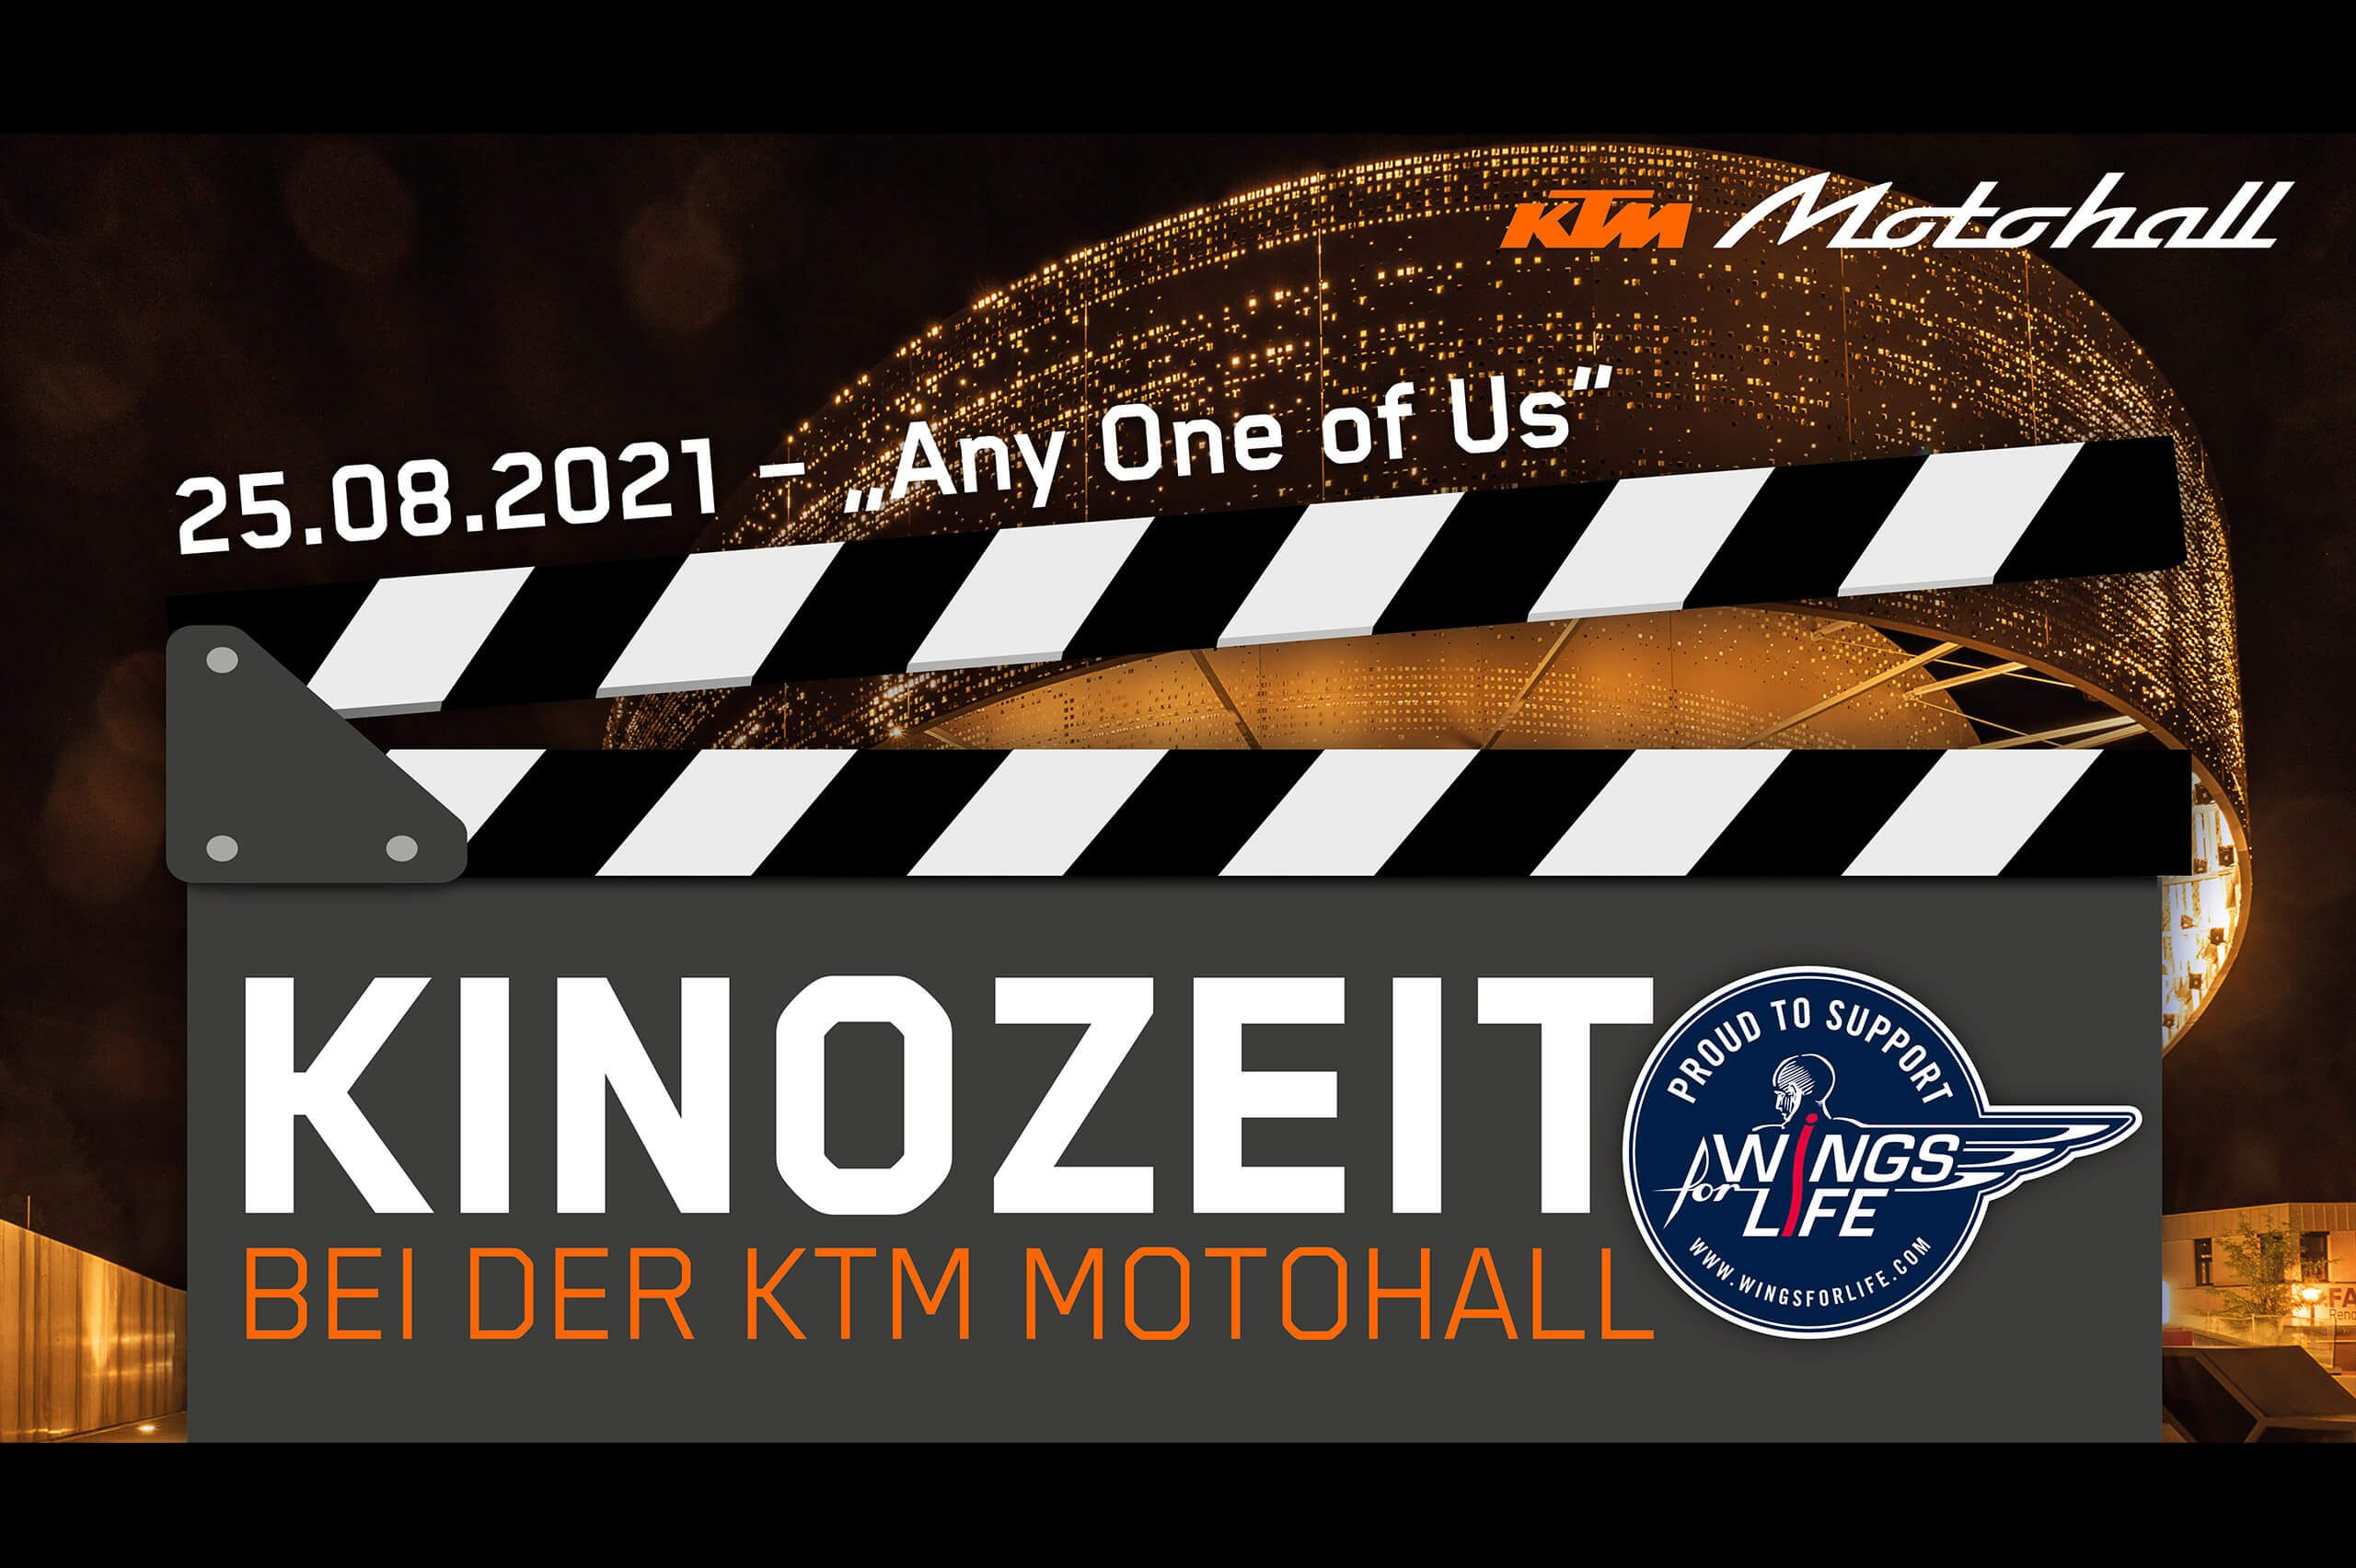 WINGS FOR LIFE KINOZEIT IN DER KTM MOTOHALL